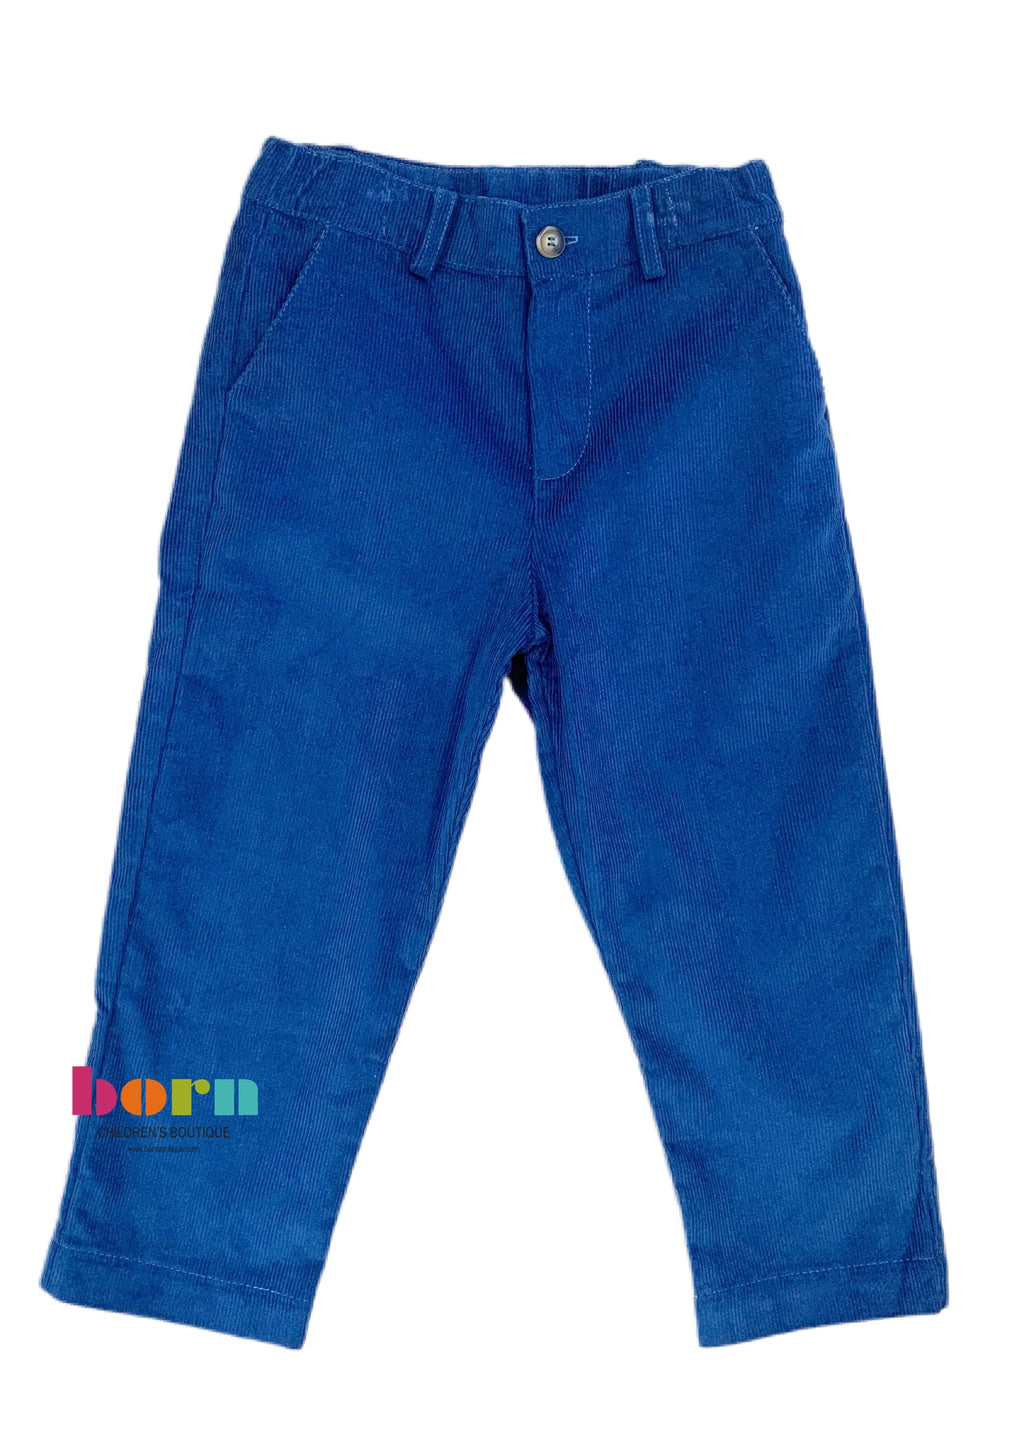 Boys Tailored Pant - Pacific Corduroy - Born Childrens Boutique